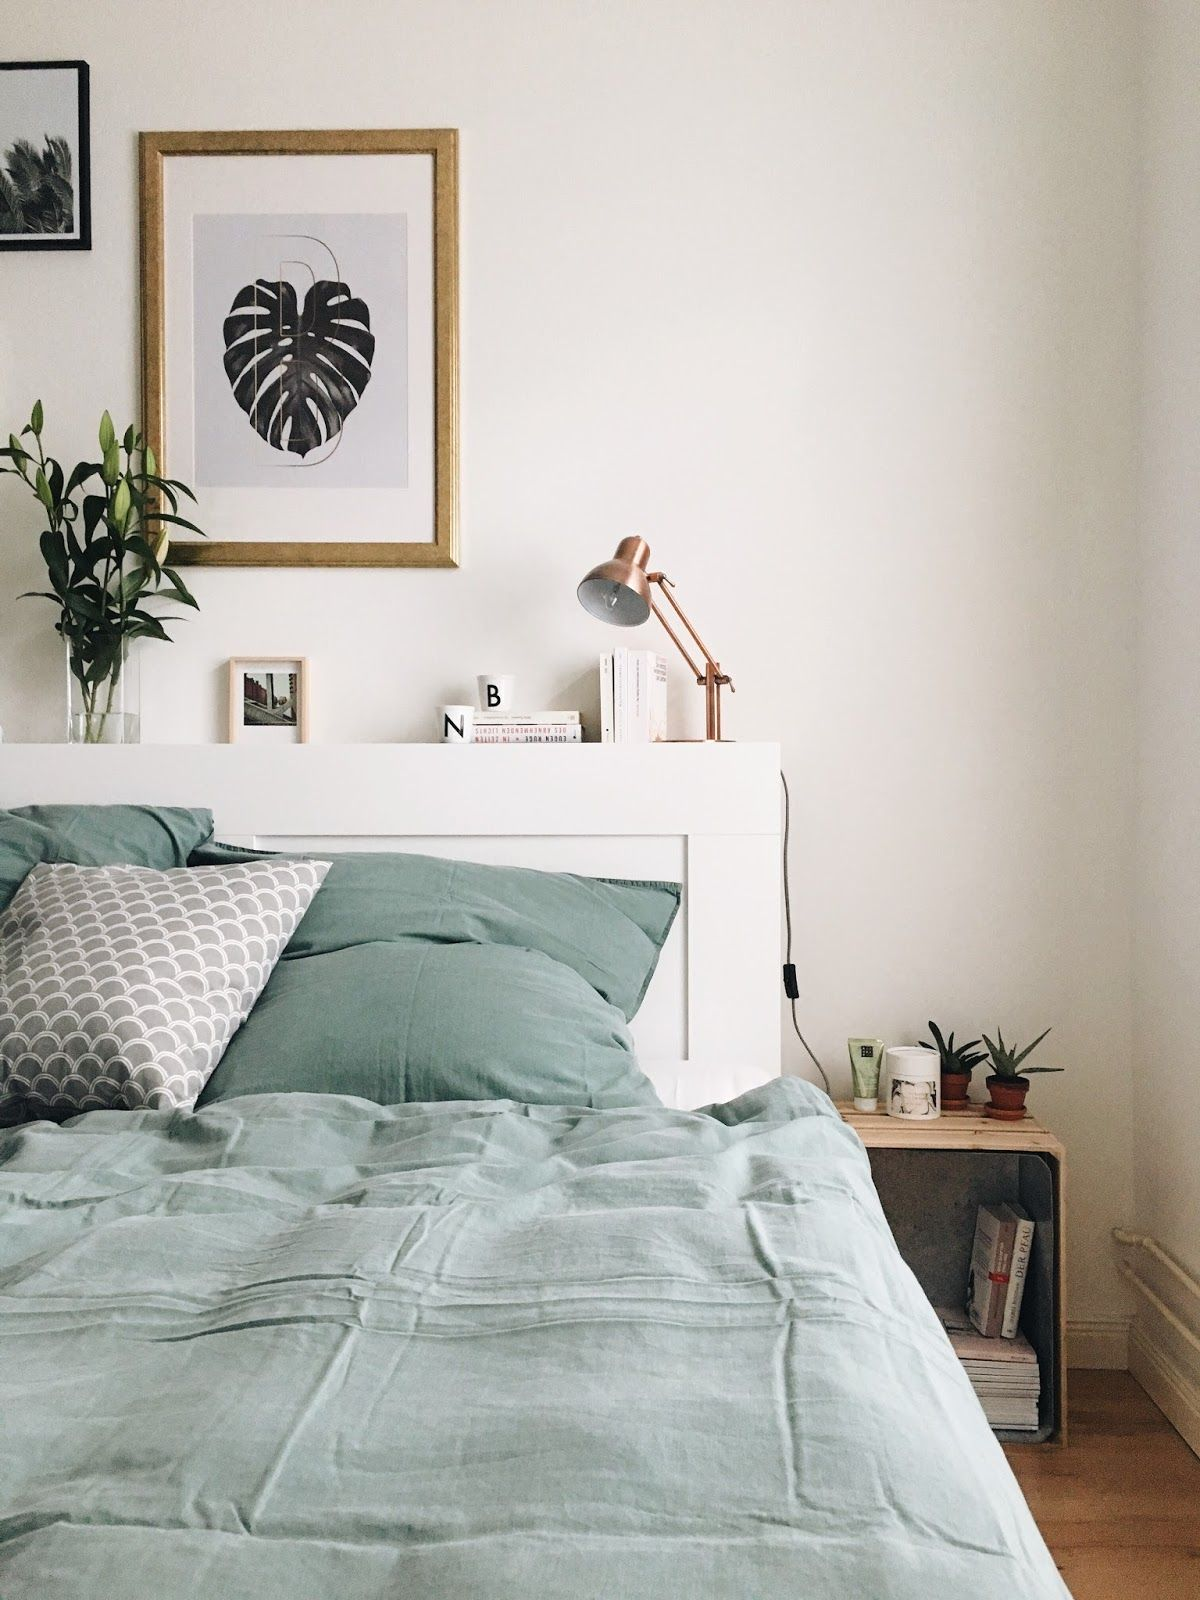 At home with... Nori von Ninosy   Interiors, Bedrooms and Industrial